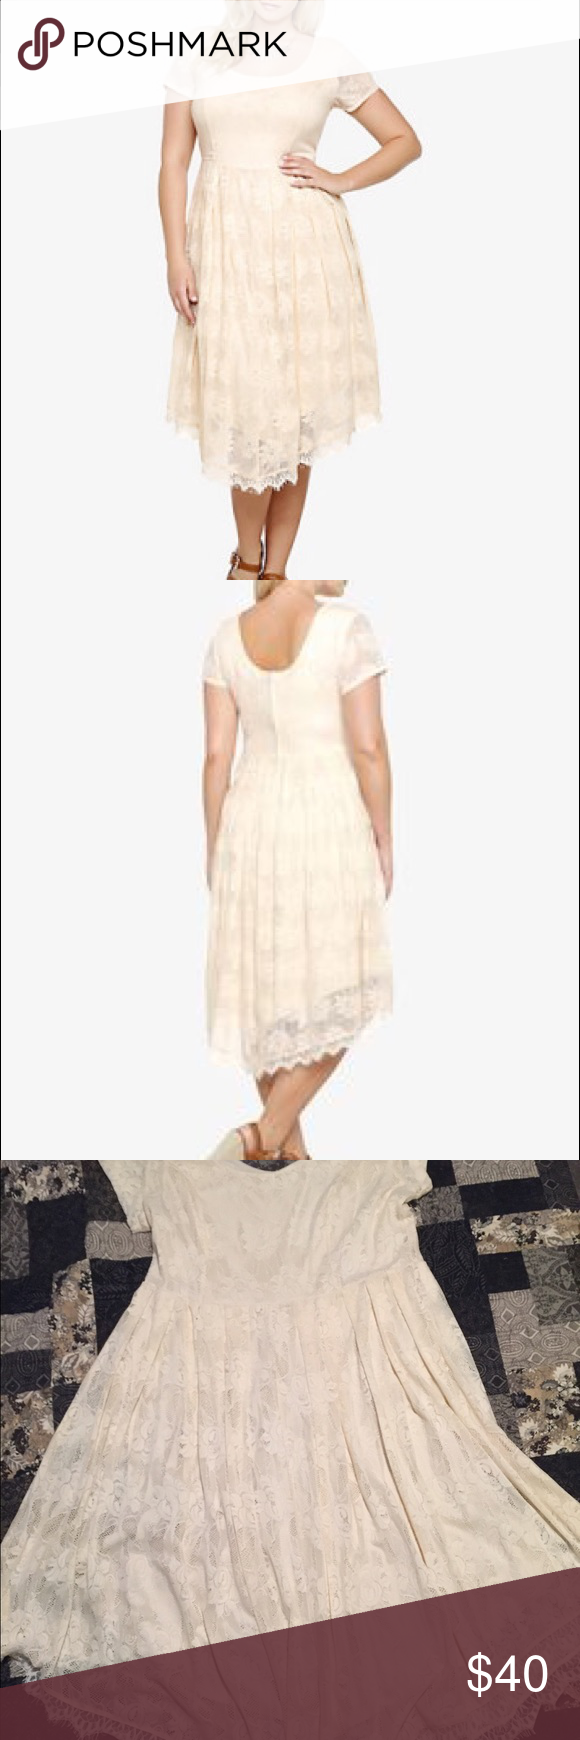 Lace dress torrid  OffWhite Lace VHemline Skater Dress Never worn Totally beautiful